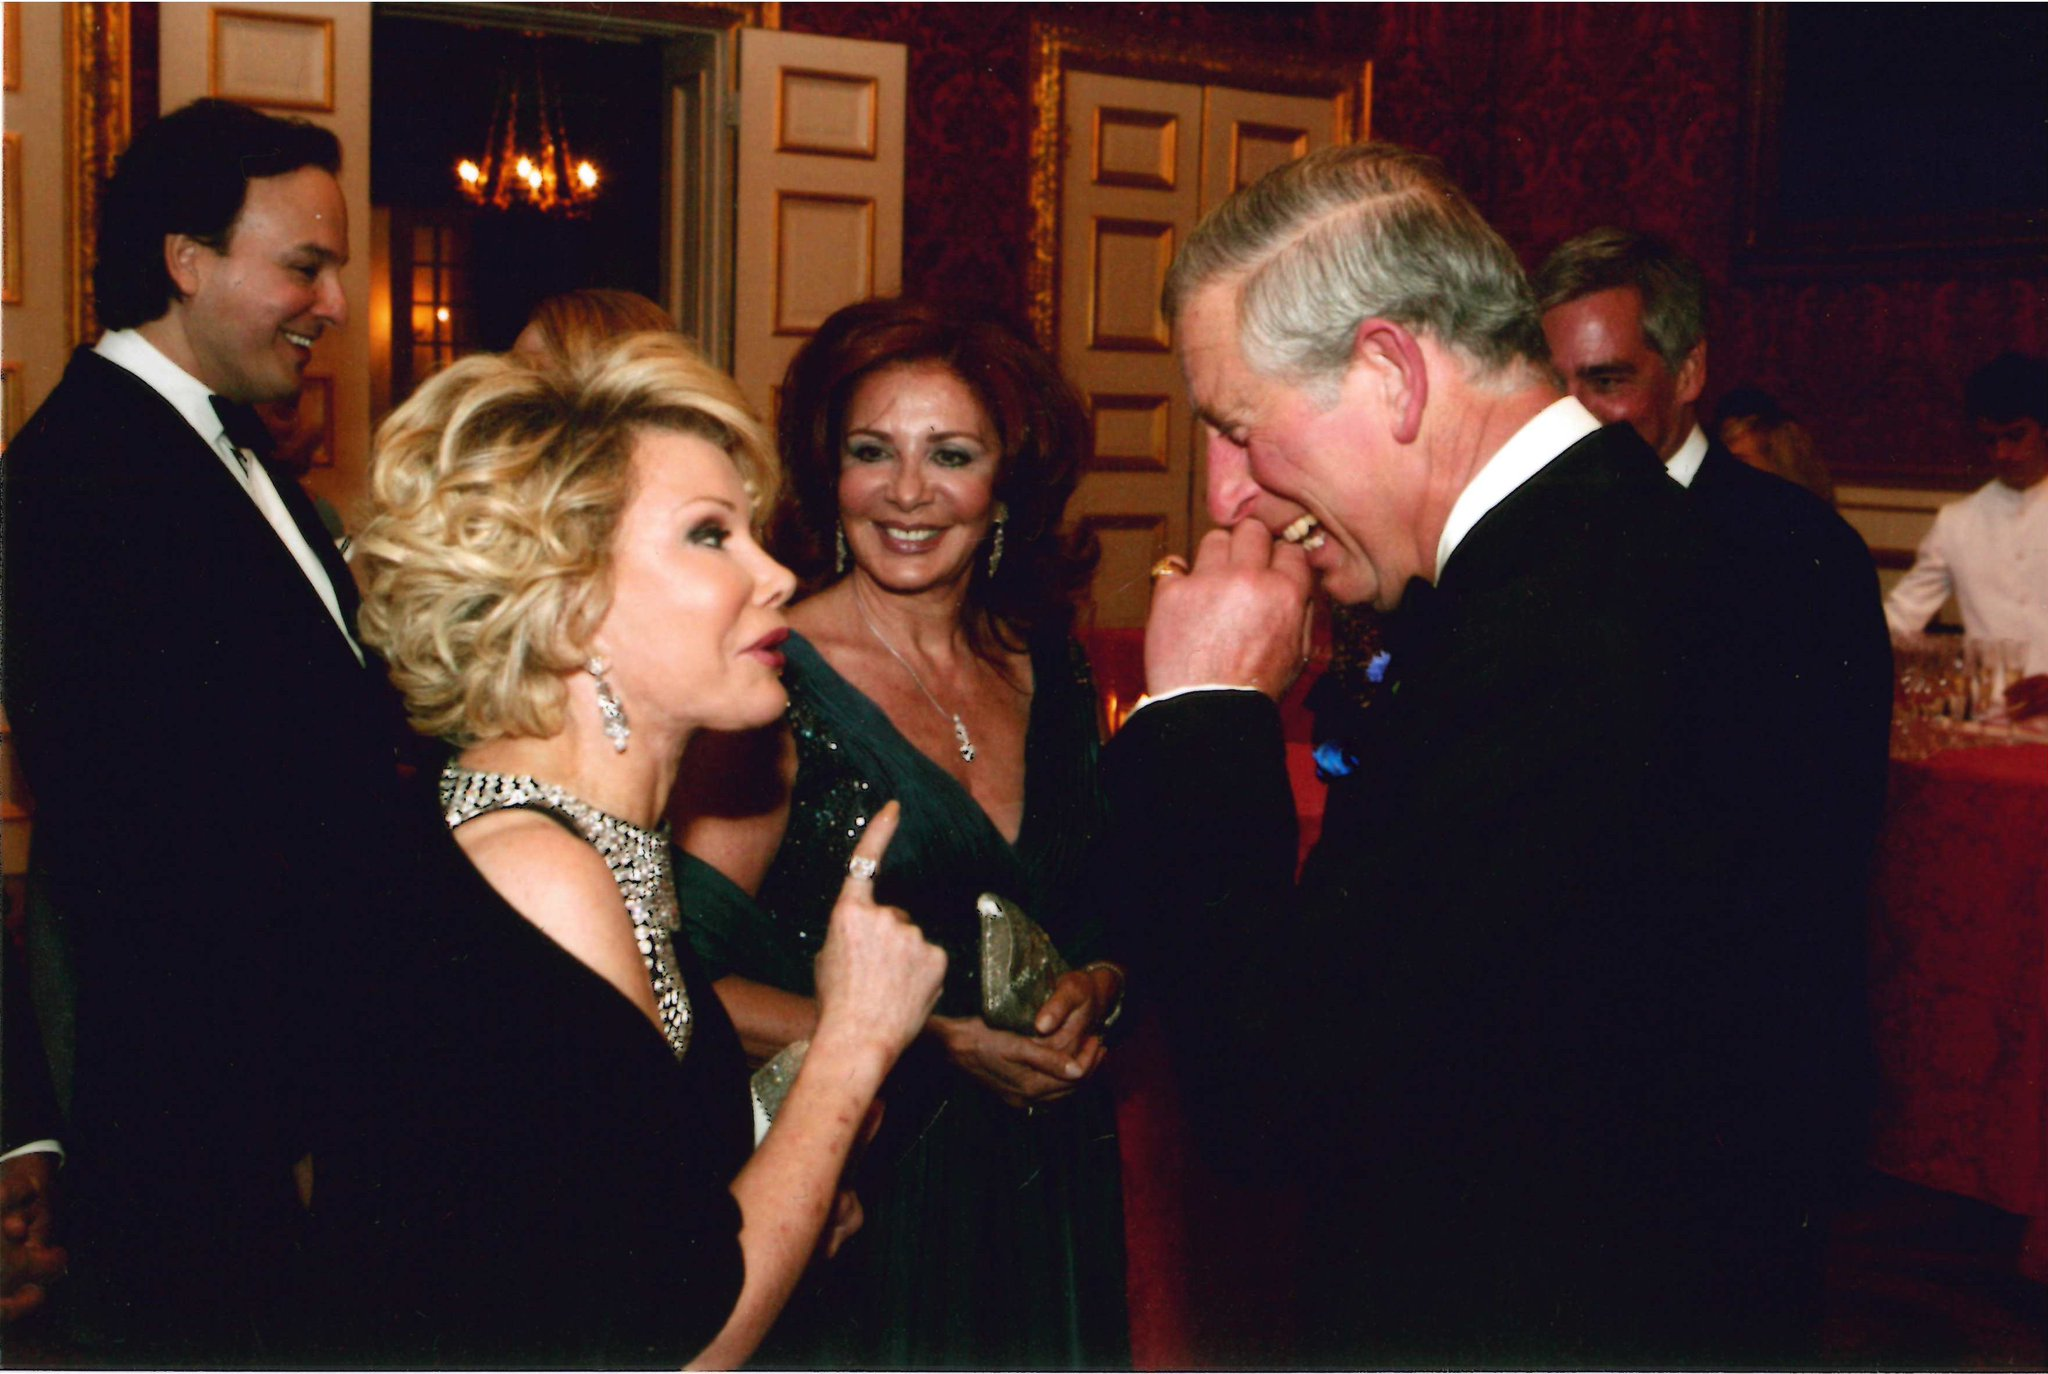 She could always make him laugh! Happy Birthday to Joan's good friend, HRH Prince Charles! https://t.co/St5Lft4cqf